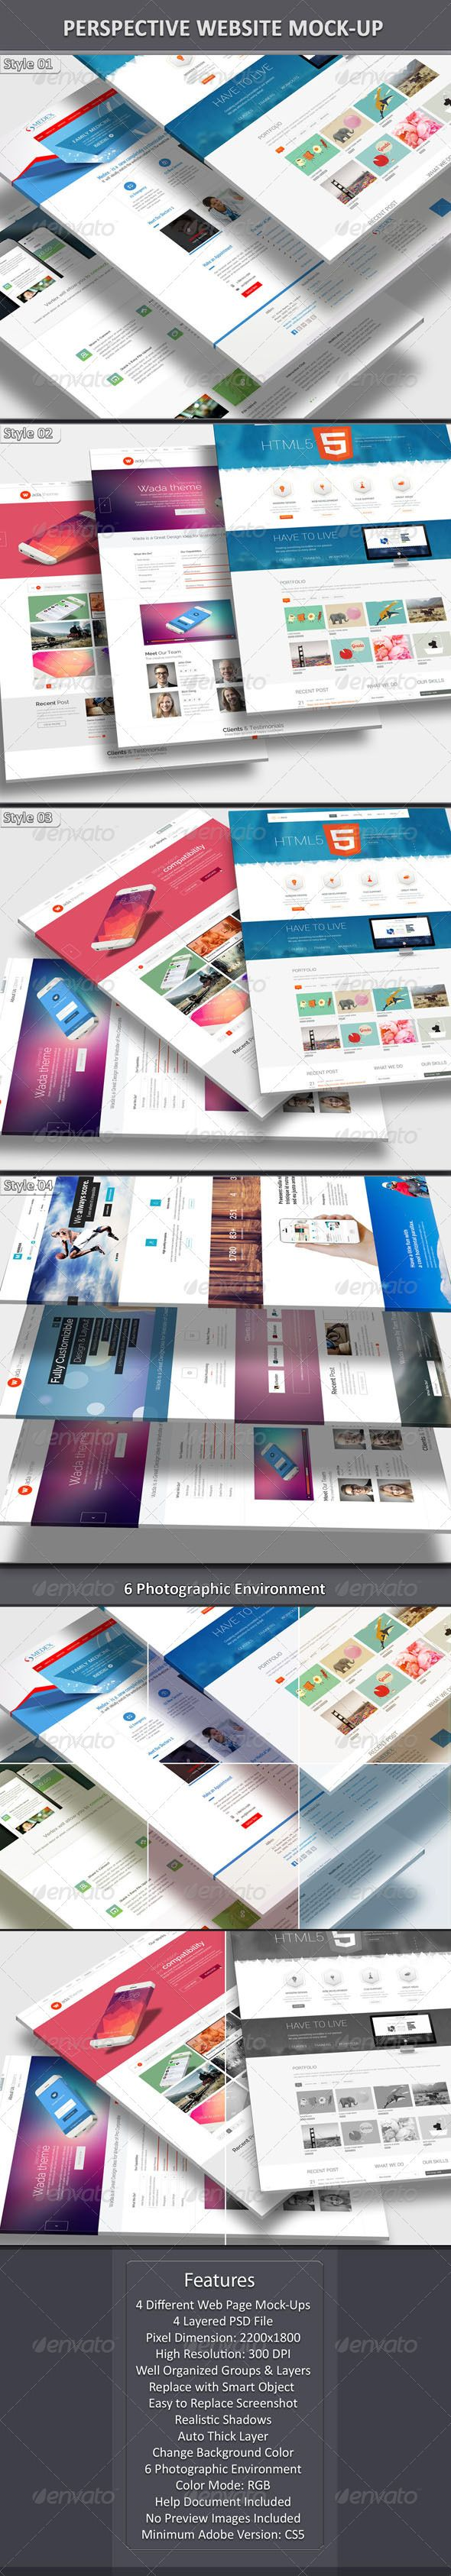 Perspective Web MockUp — Photoshop PSD #smart #3 screen • Available here → https://graphicriver.net/item/perspective-web-mockup/7492639?ref=pxcr